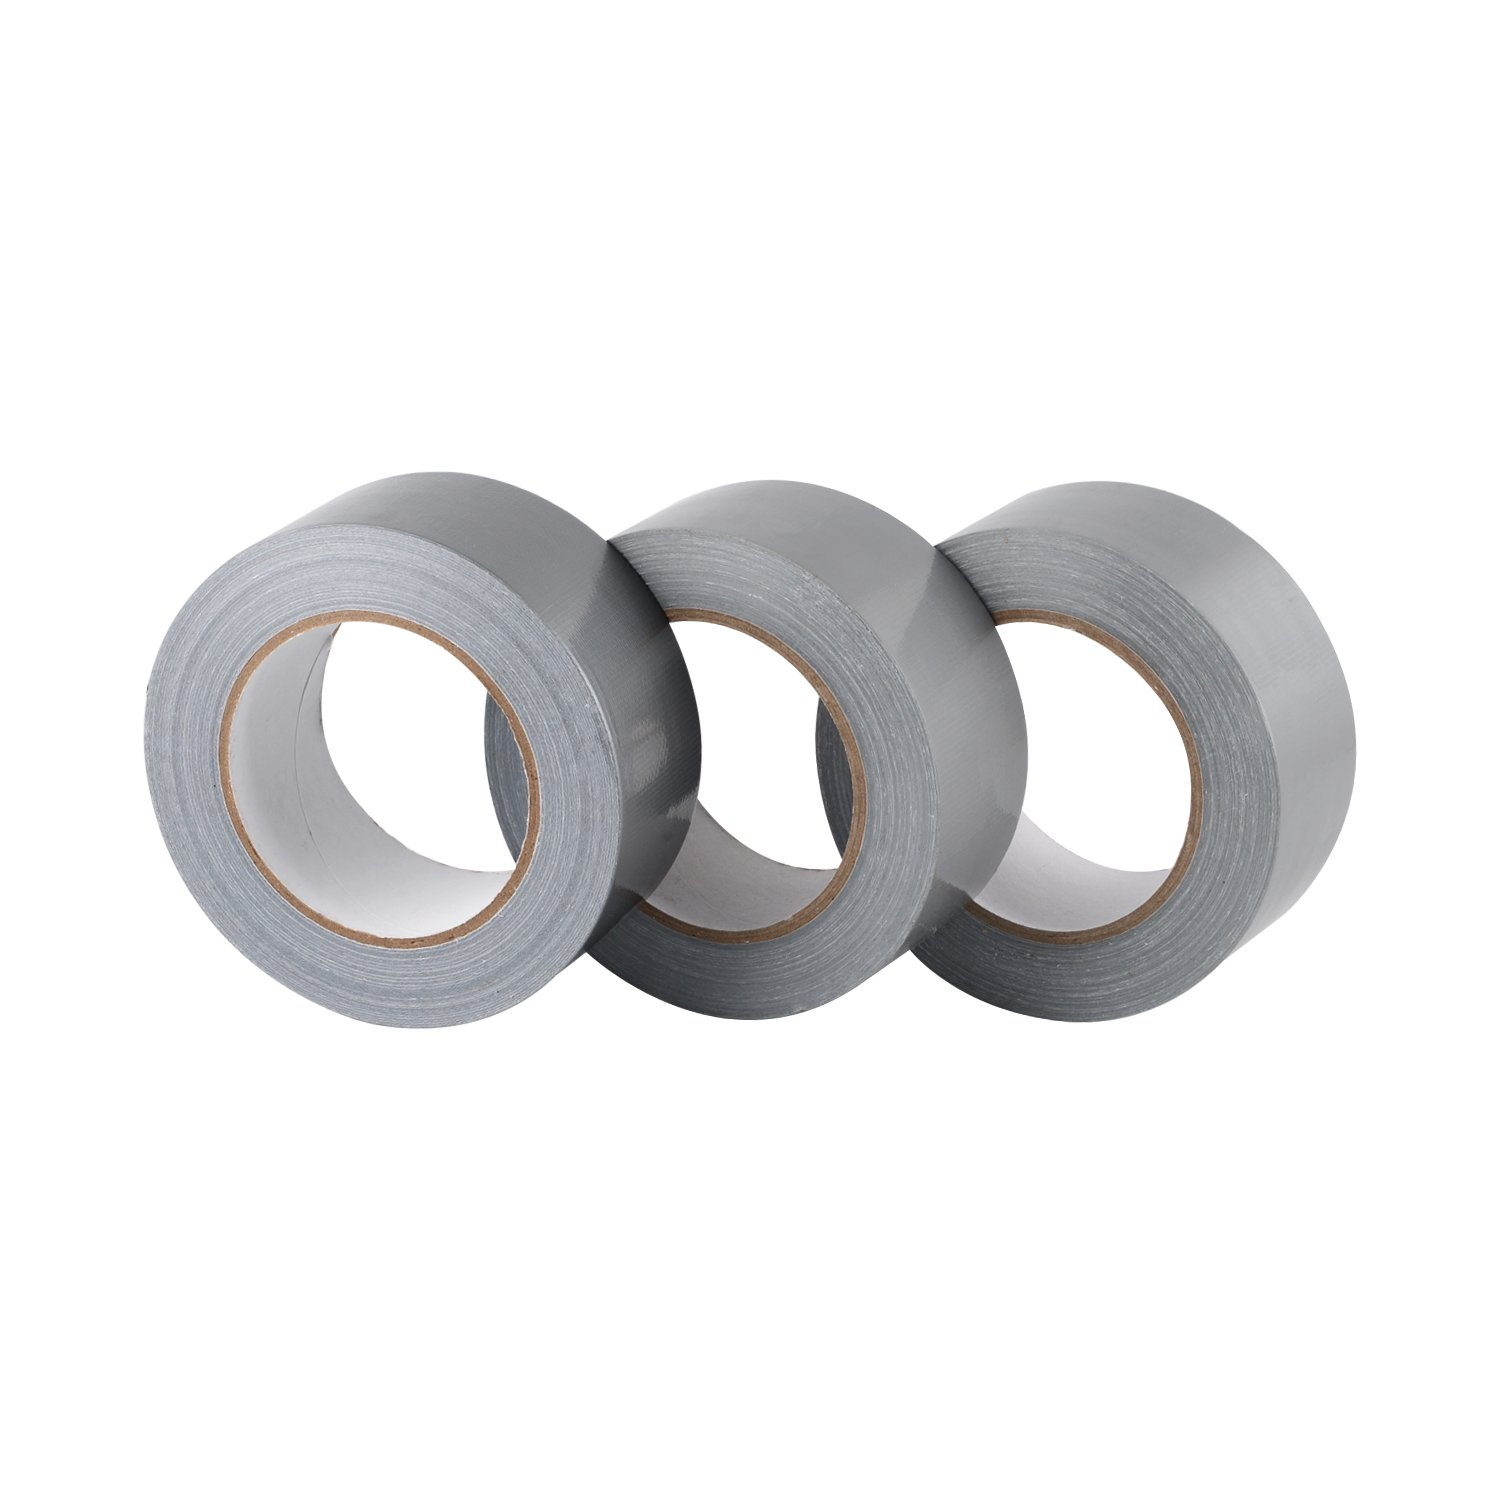 OGI Duct Tape Silver, 1.88 in x 35 yd (3 Pack)